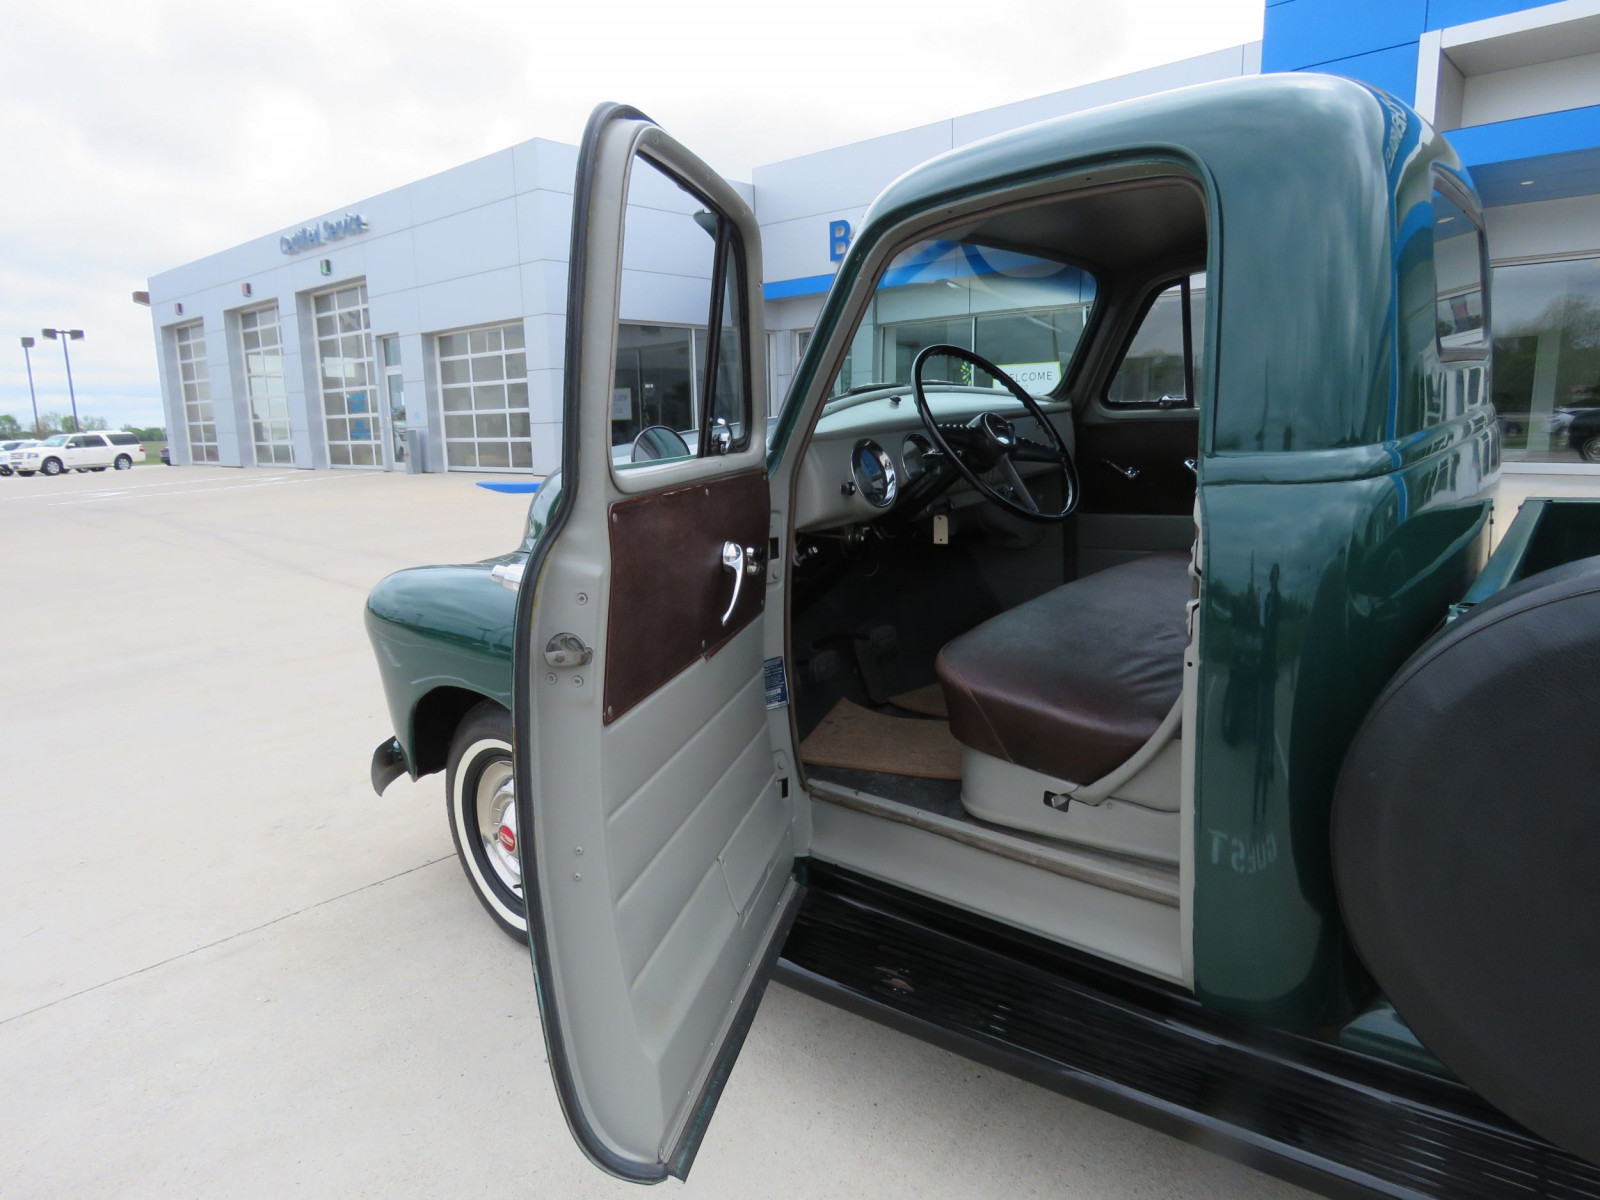 1954 Chevrolet 3100 Series Pickup - Image 11